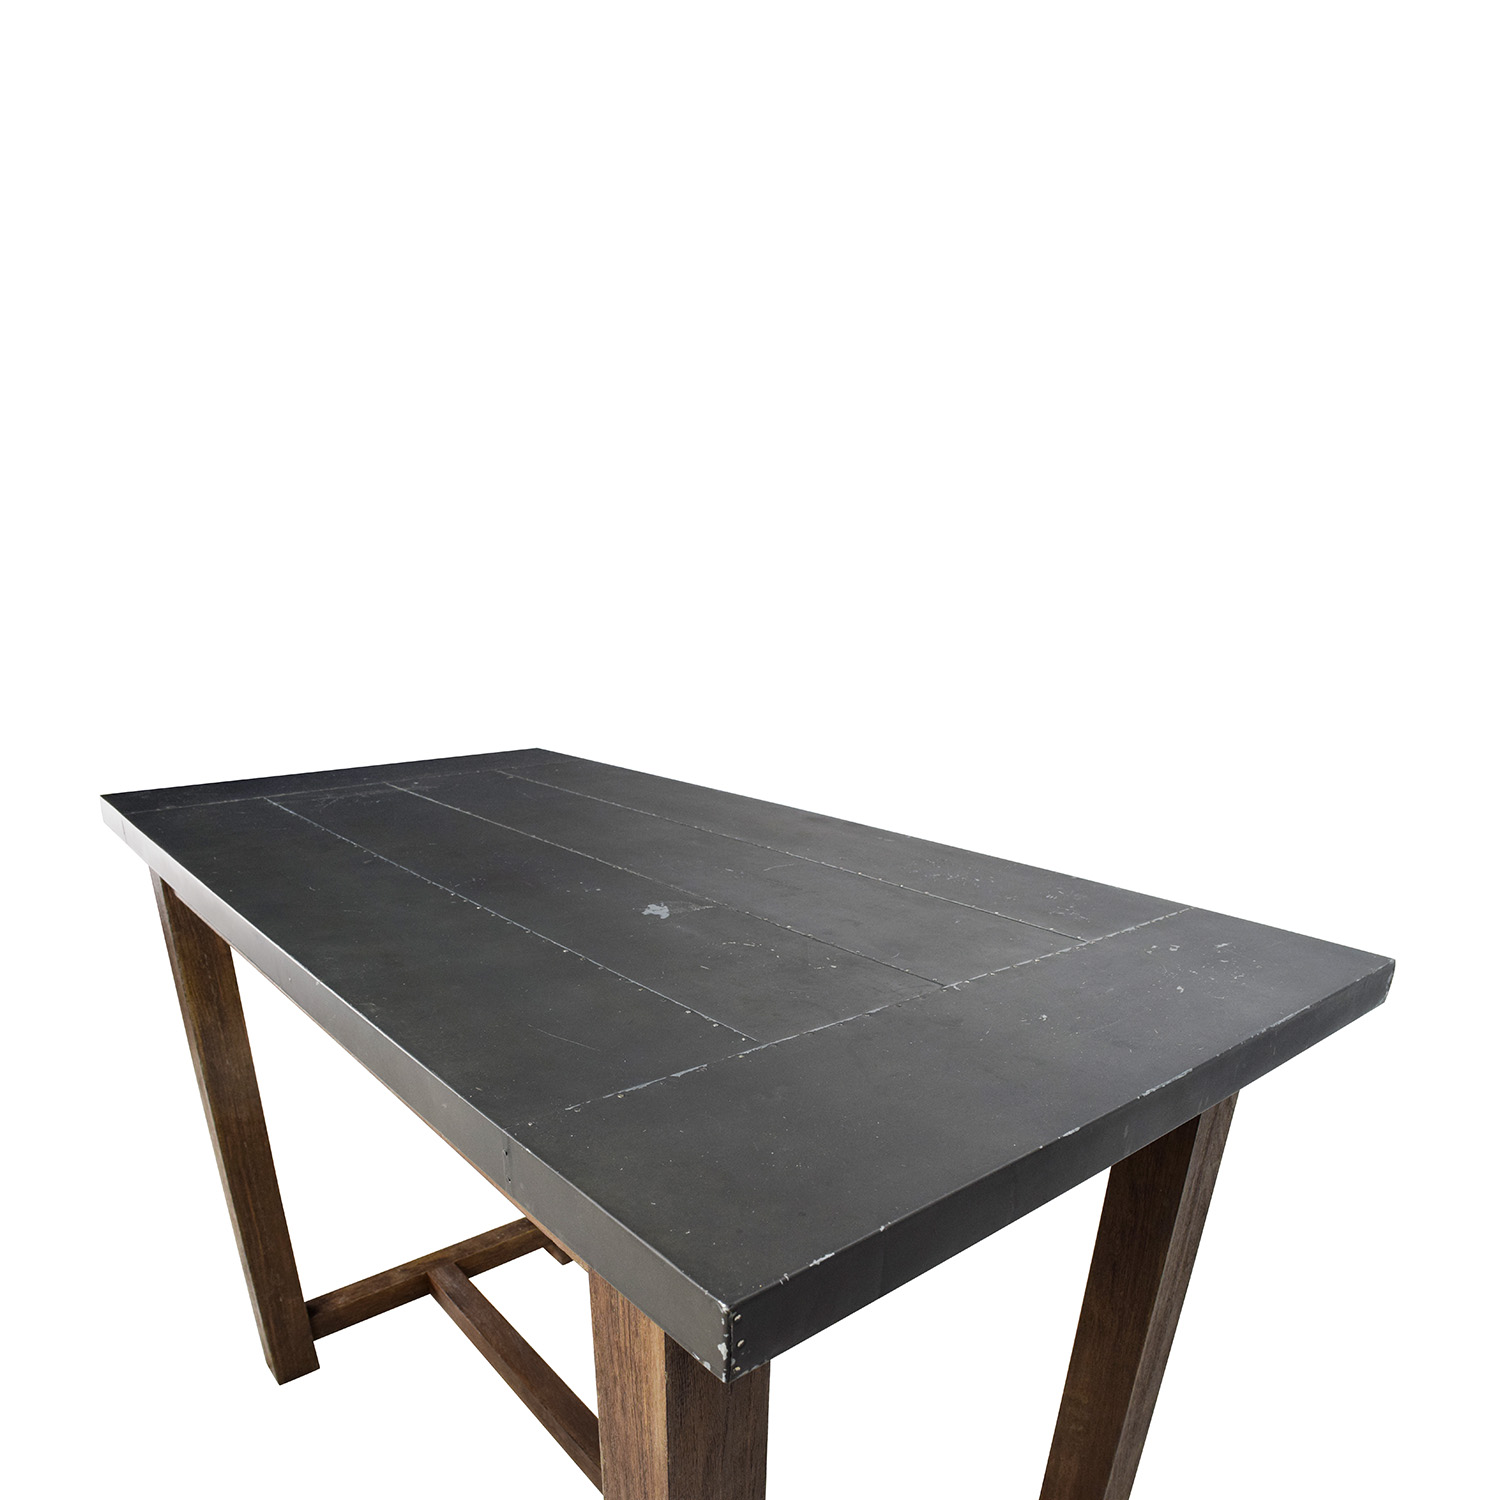 OFF Crate and Barrel Crate & Barrel Galvin High Table Tables